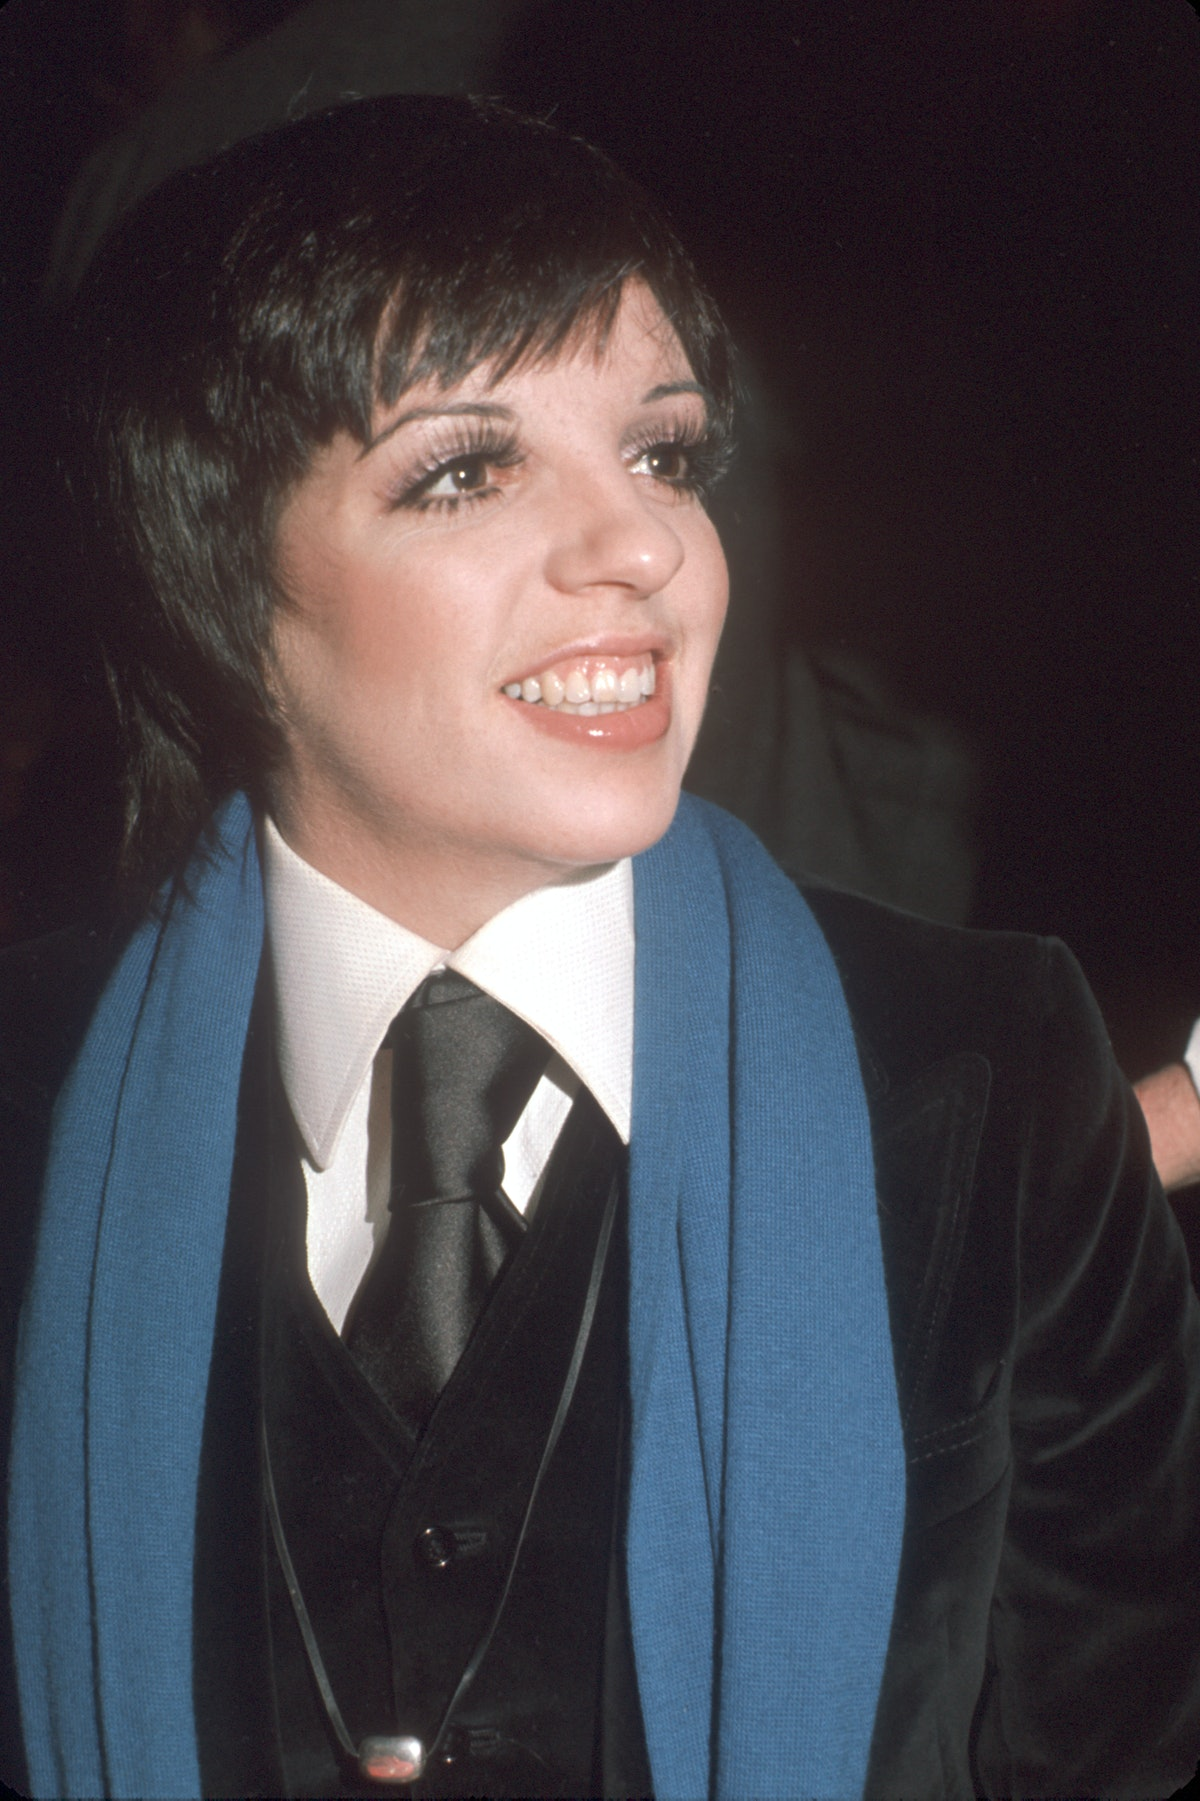 Liza wearing a black suit and tie with blue scarf